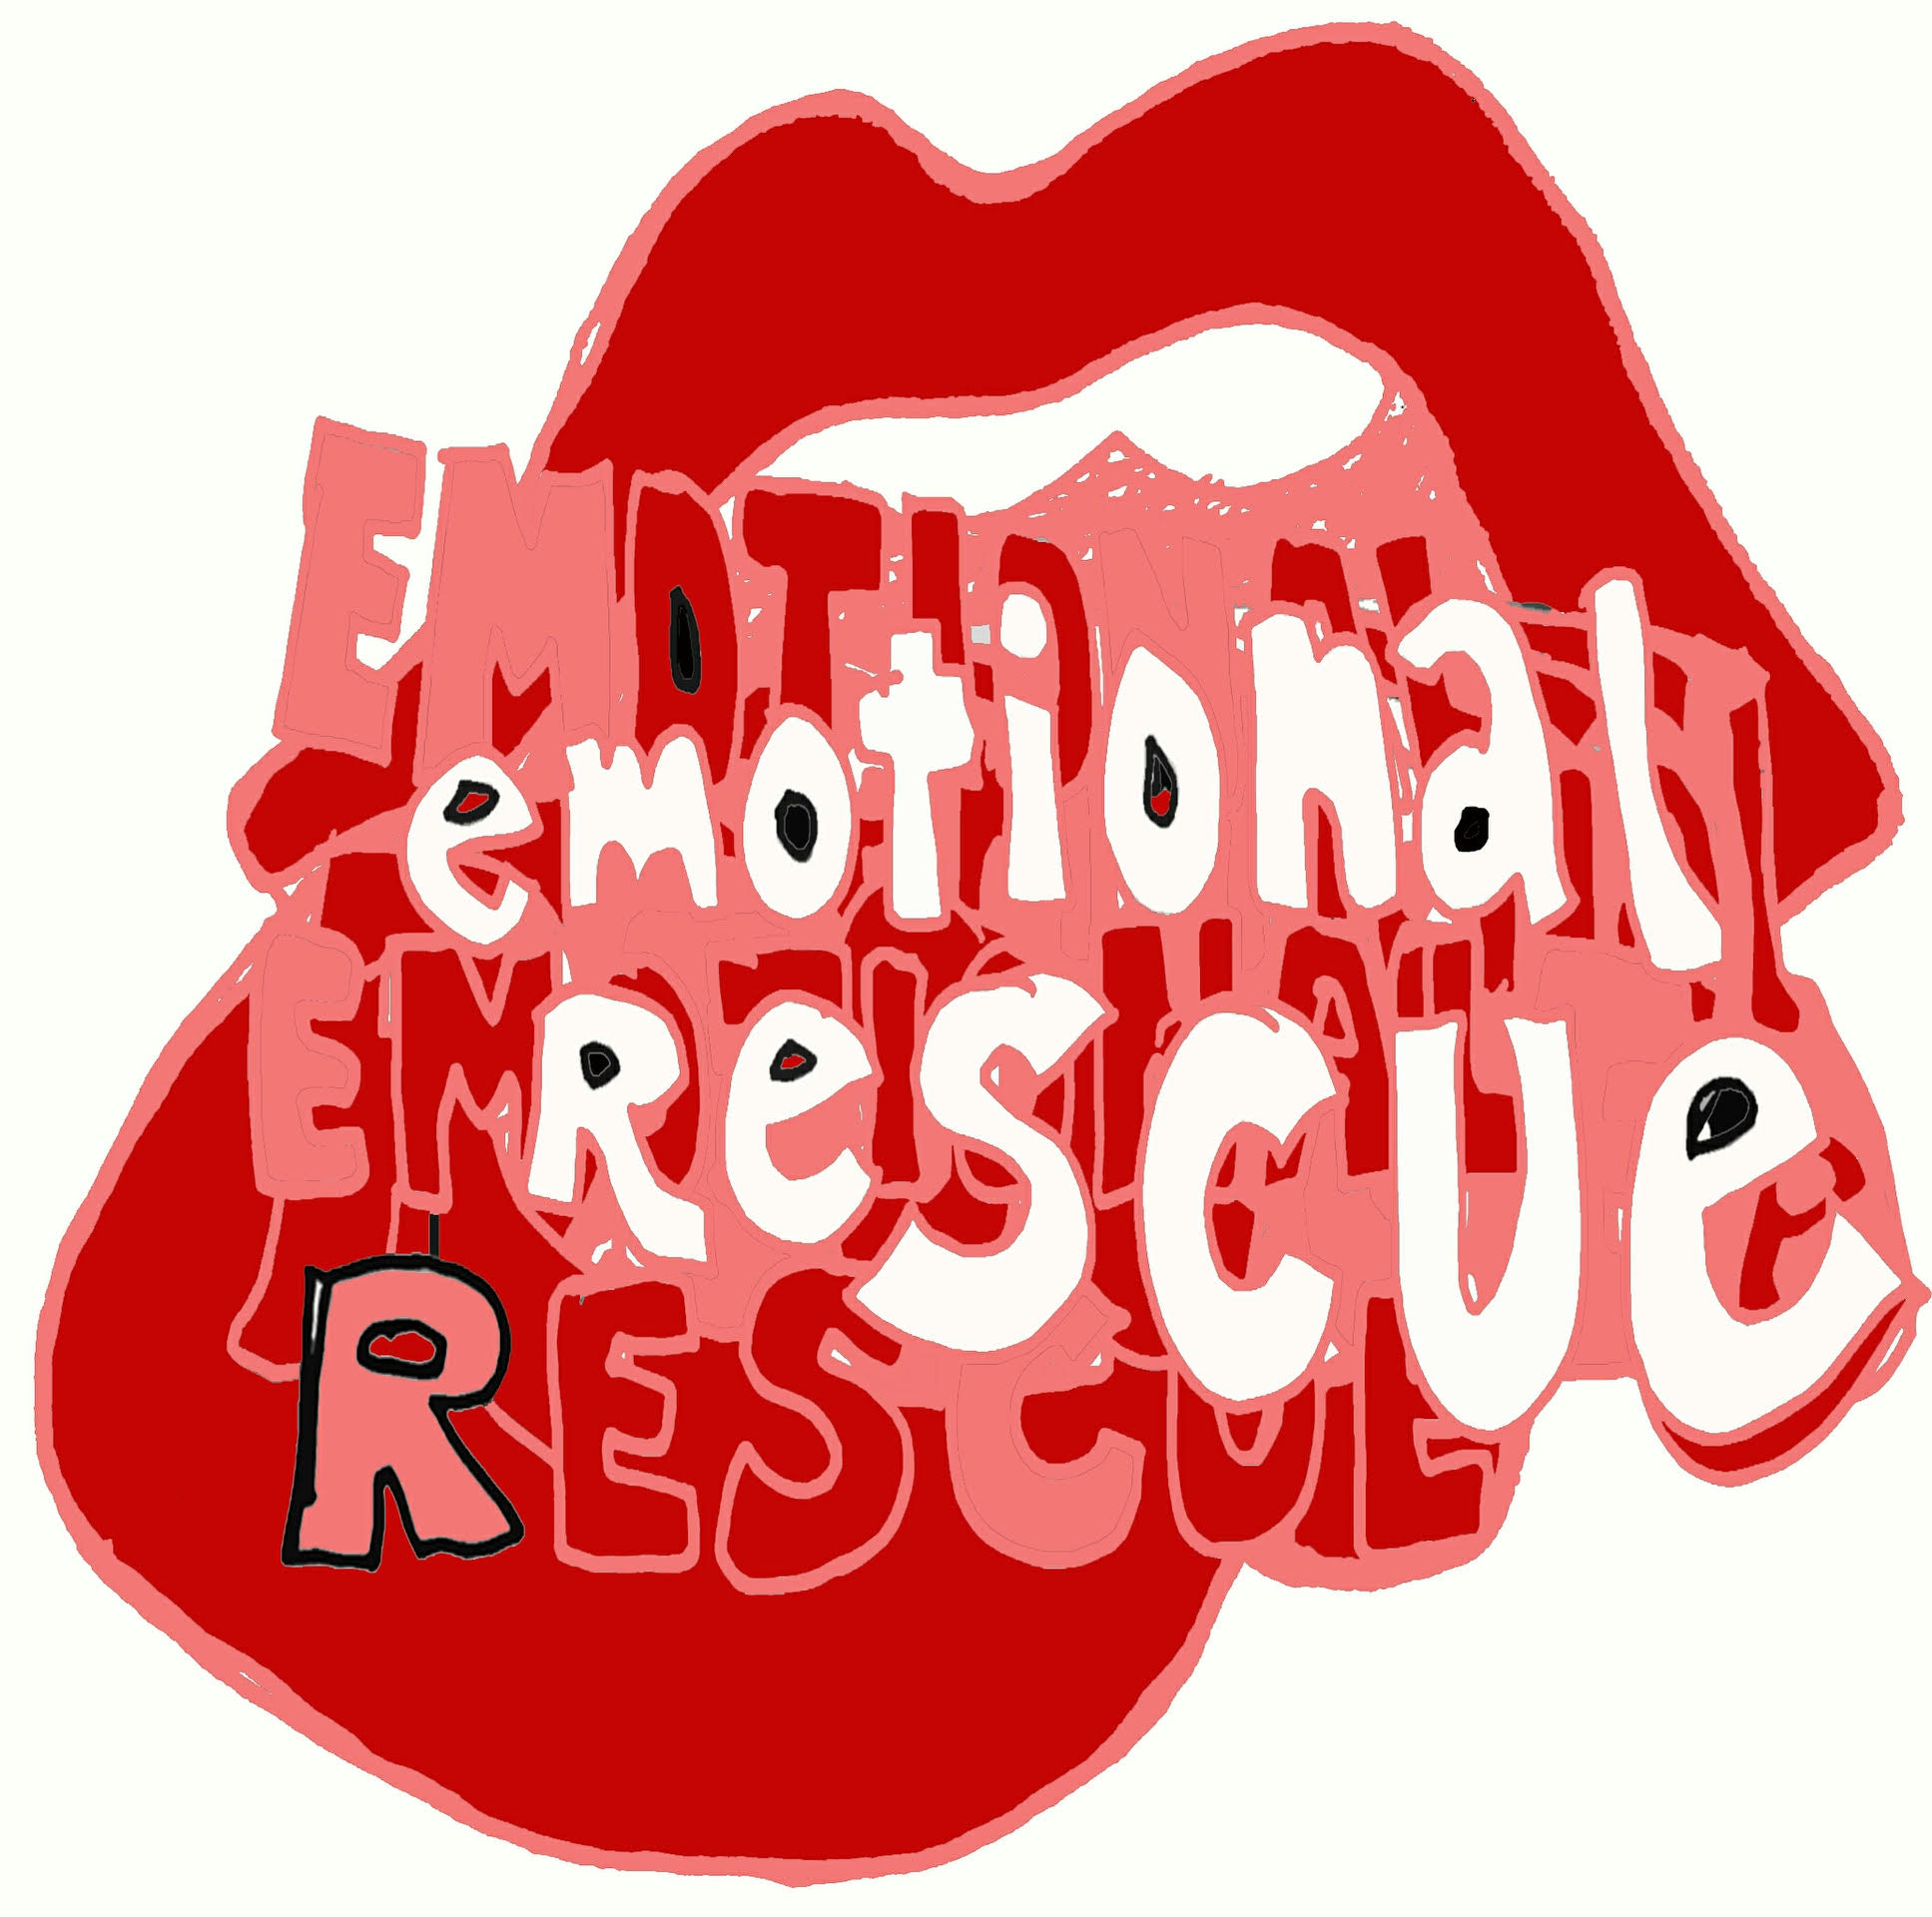 emotional rescue 3.jpg